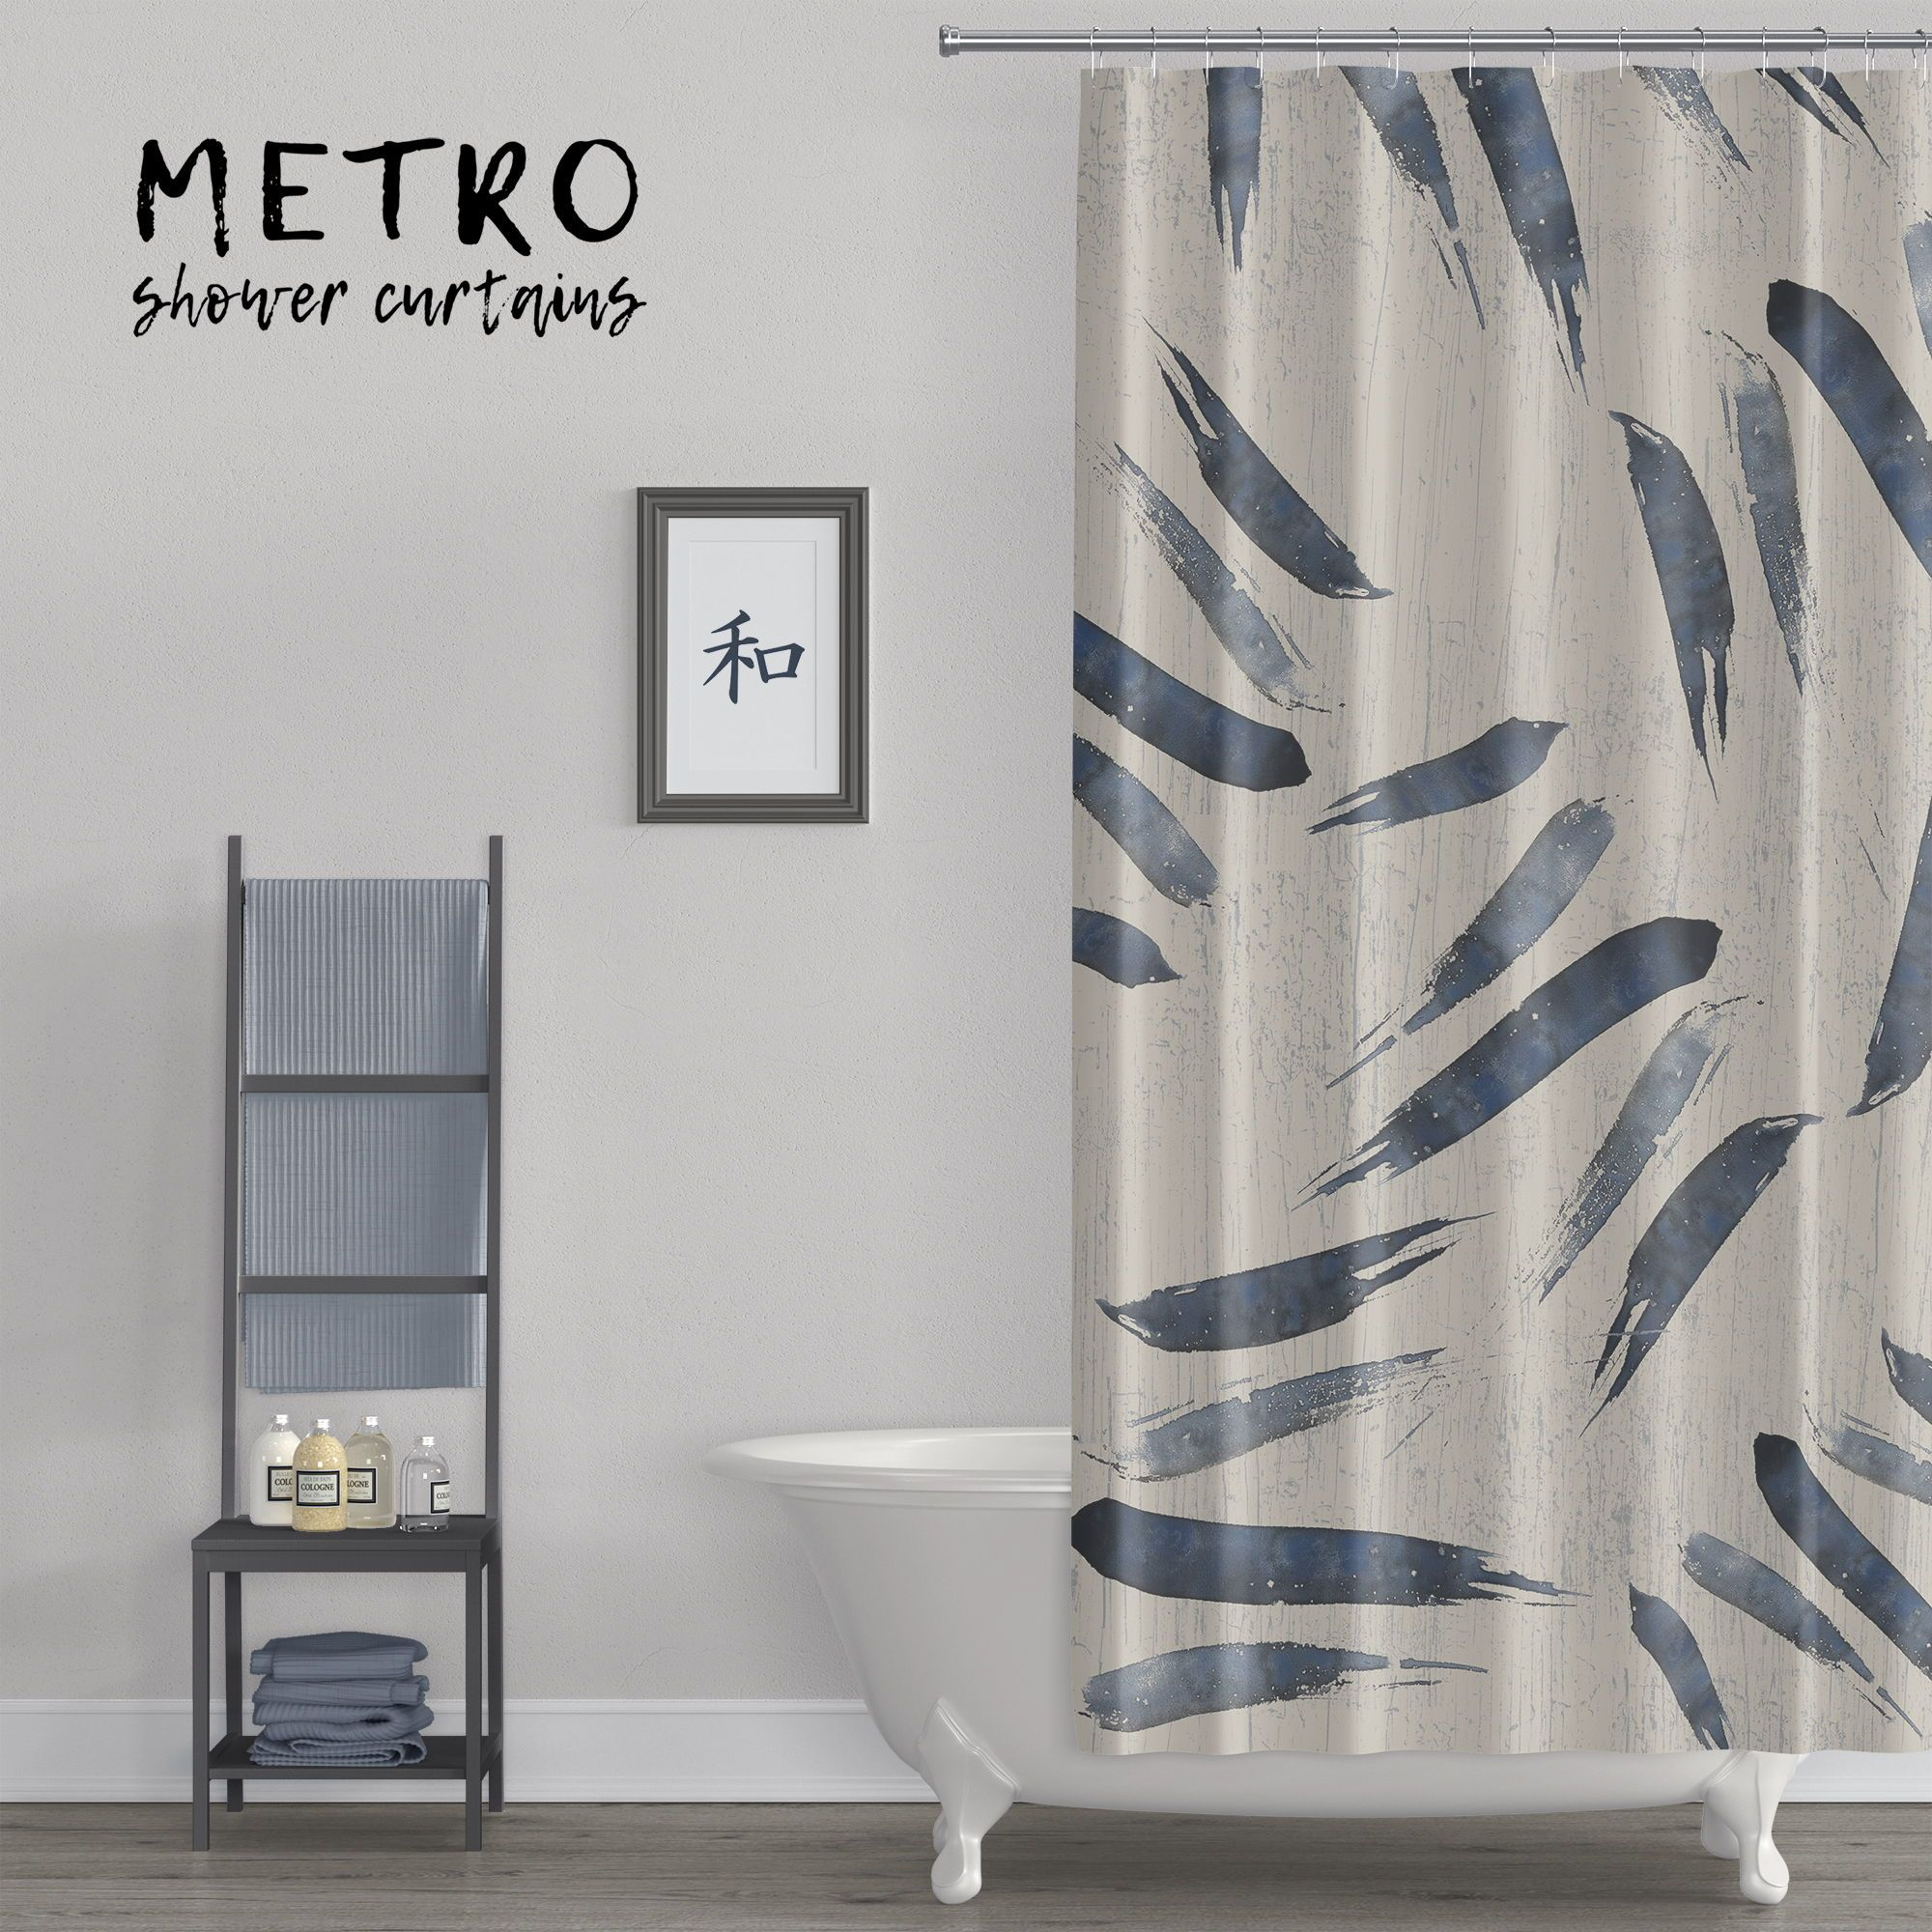 Indigo Blue Japanese Style Brush Stroke Shower Curtain Watercolor Shower Curtain Neutral Bathrooms Designs Striped Shower Curtains